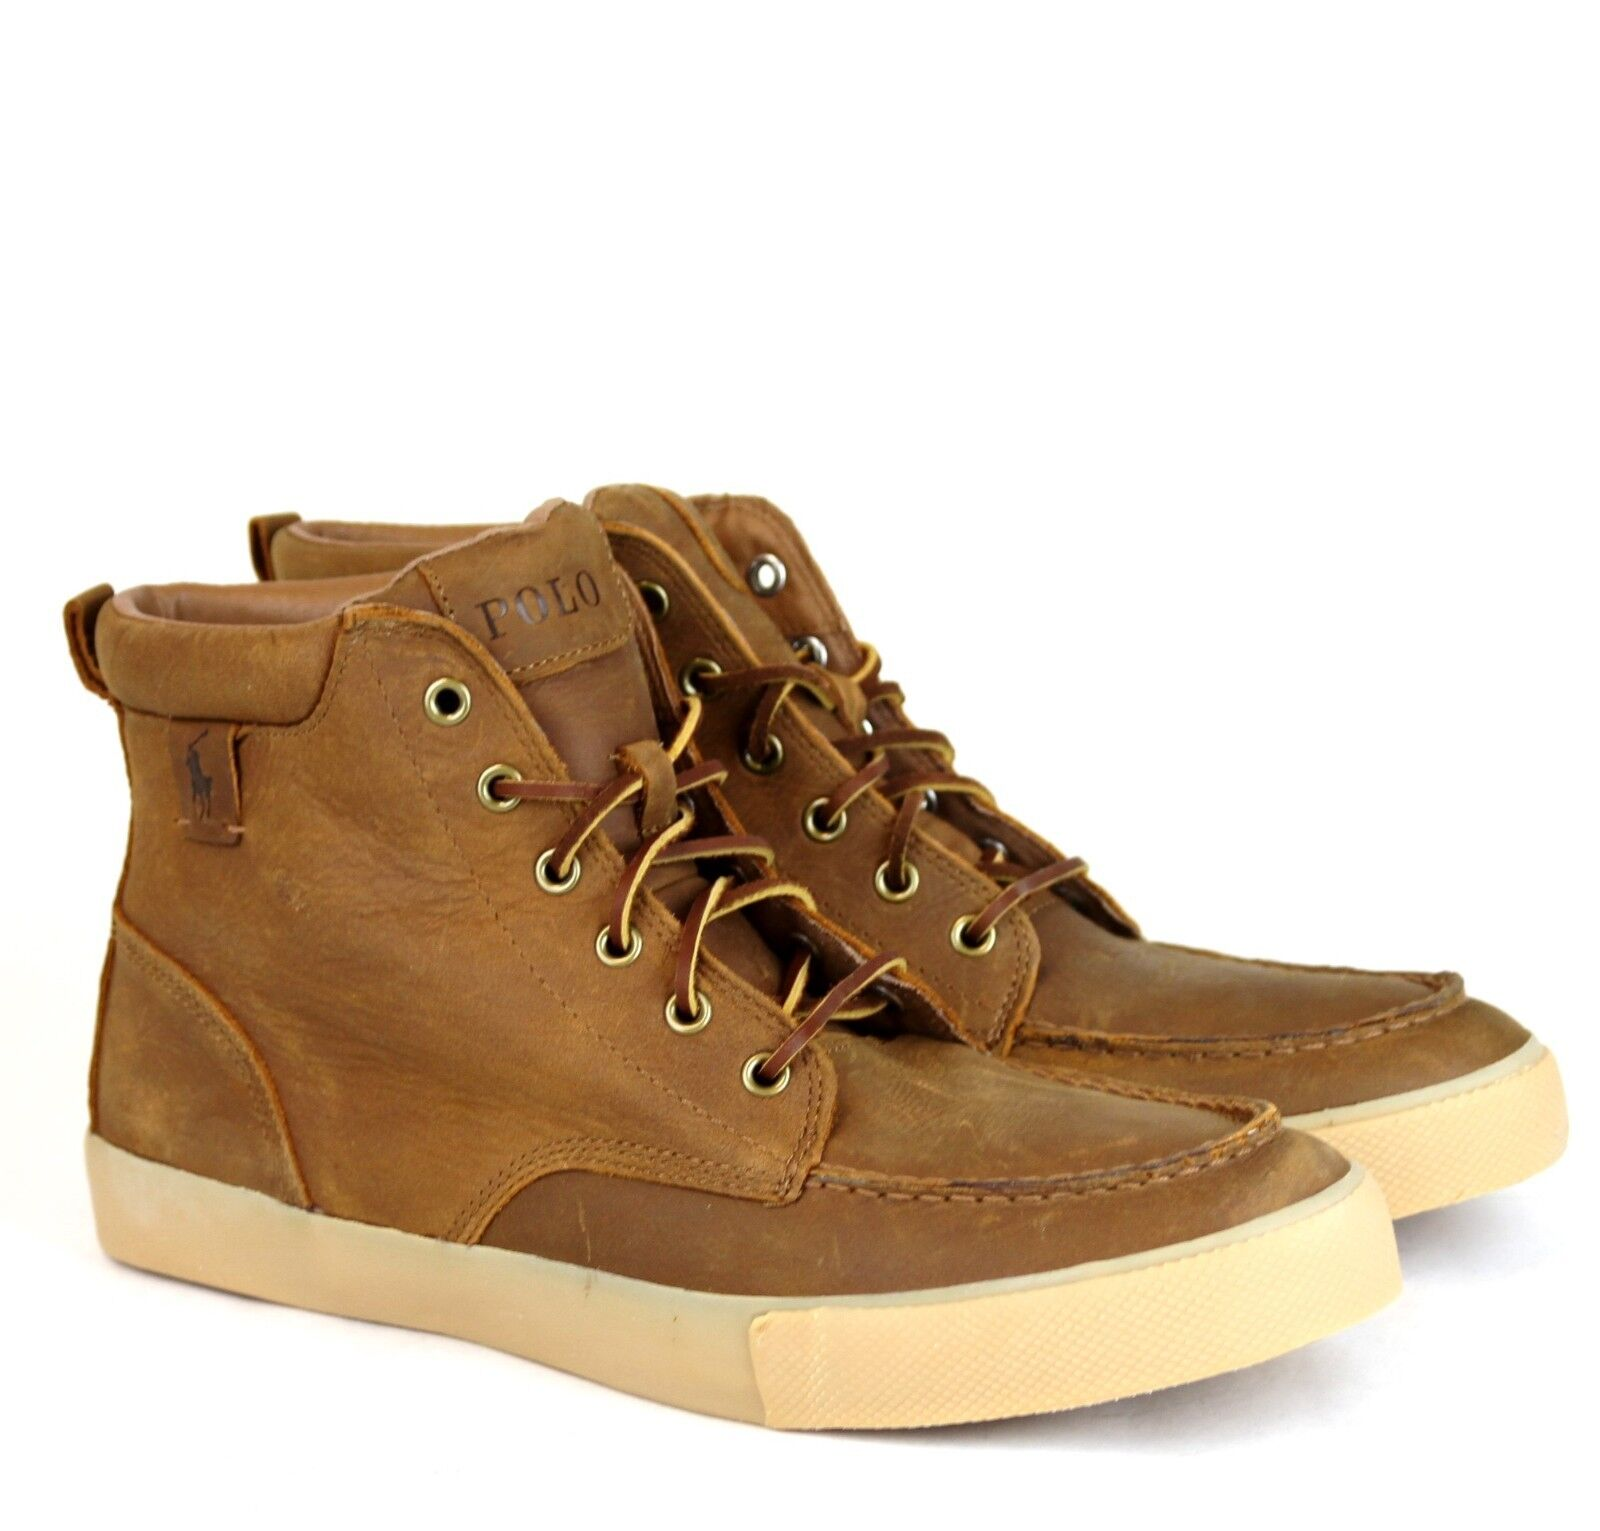 sale retailer 638e3 4081f ... New Authentic Ralph Polo Ralph Authentic Lauren Tedd Pelle High Top  Scarpe da Ginnastica w  ...